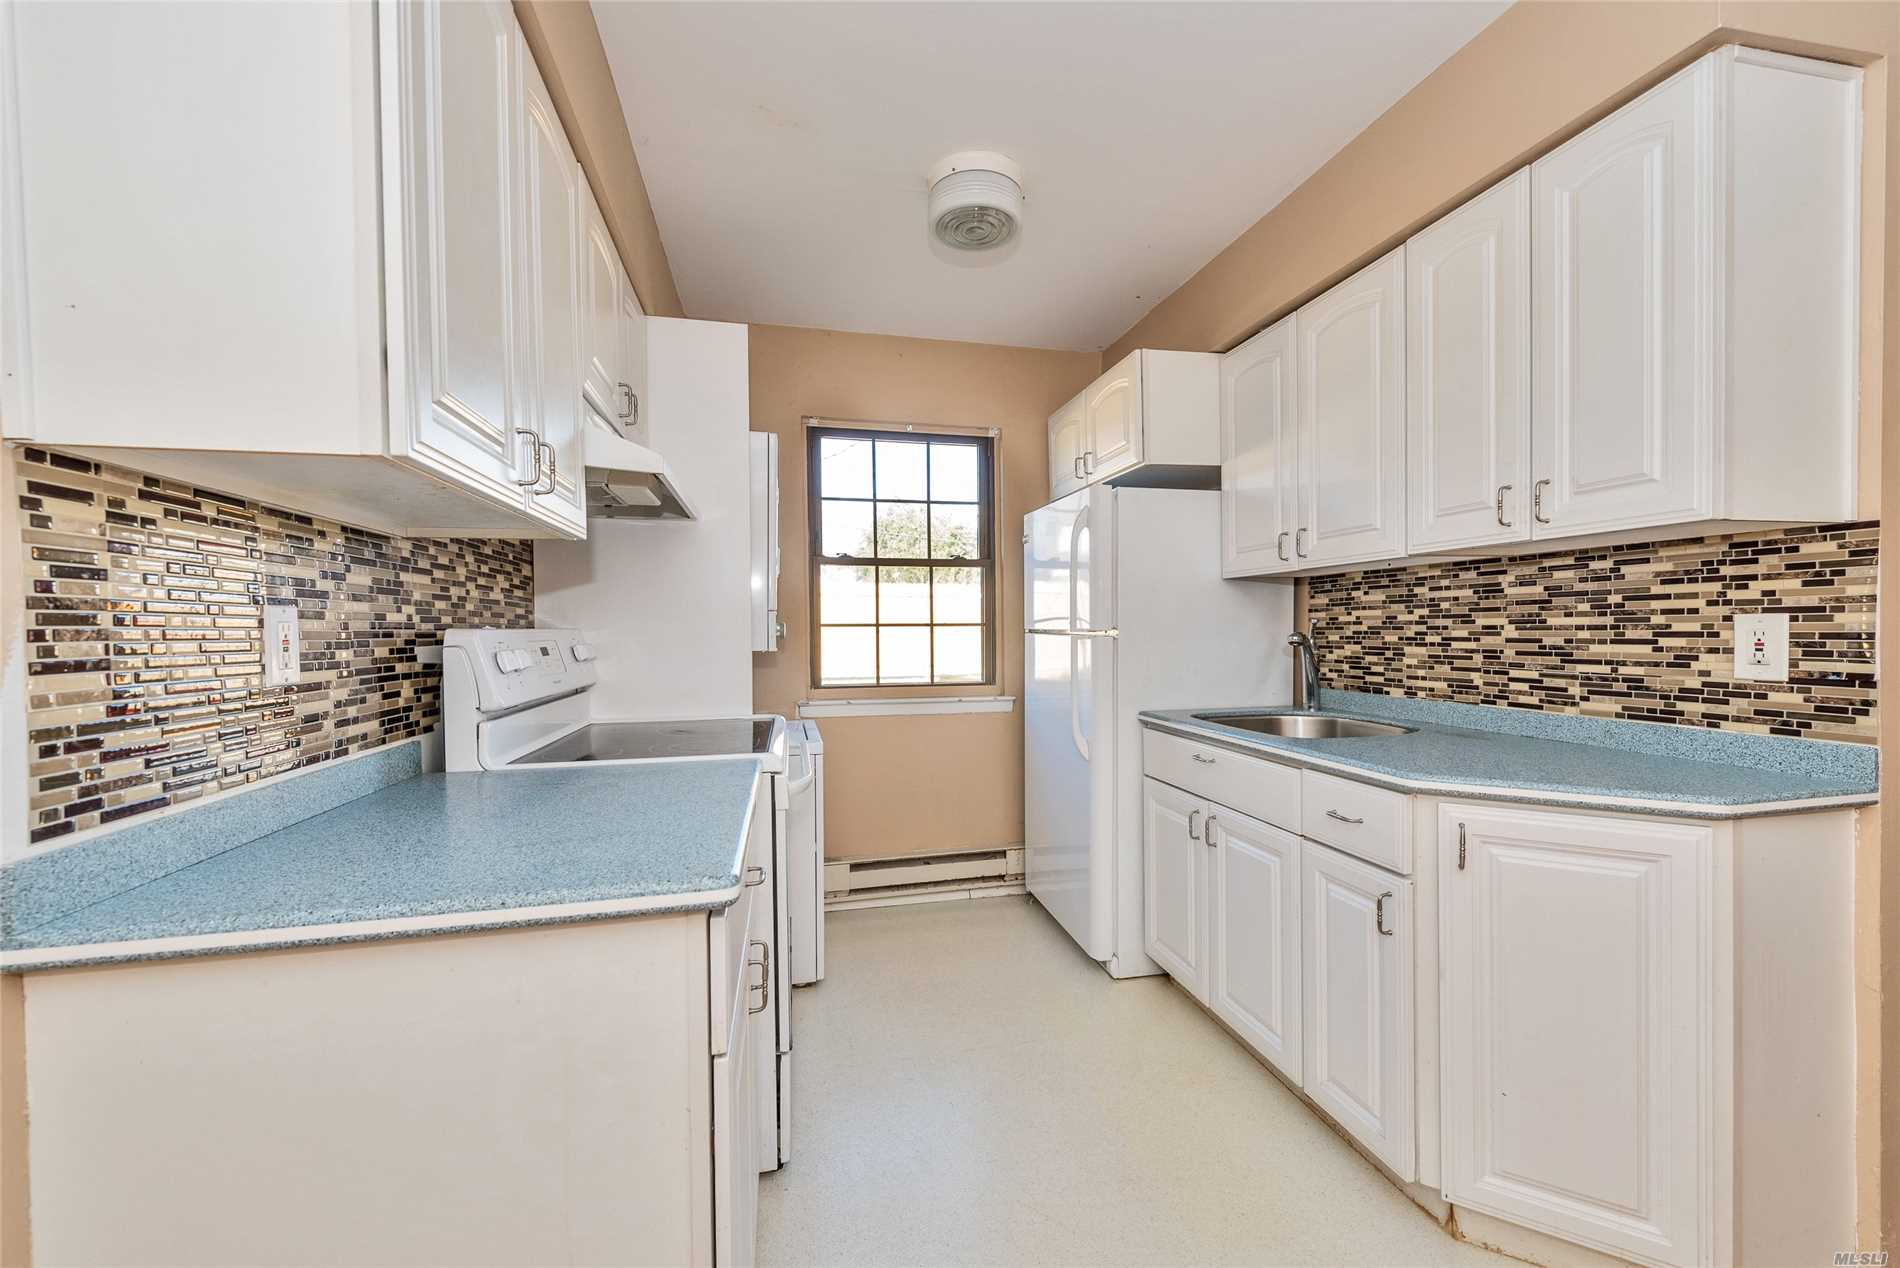 Sale May Be Subject To Terms & Conditions Of An Offering Plan. First Flr Condo W/Lrg Living Rm W/Hw Flrs, Eik W/Dining Area, Stackable Washer/Dryer, Pantry Storage, Upd Bath & Bdrm. Common Charges: $330/Mo Plus $180.85 (5-Yr Capital Improvements Ending 2021) & $134.68 (5-Yr- Loan Ends 2023) So Total Of $645.53. Unit Gets 1 Parking Spot In Front, Ample Guest Parking On Sides. Near Shopping, Lirr, Schools, Houses Of Worship, Library, Restaurants, Highways & Parkways. Why Rent When You Can Own!